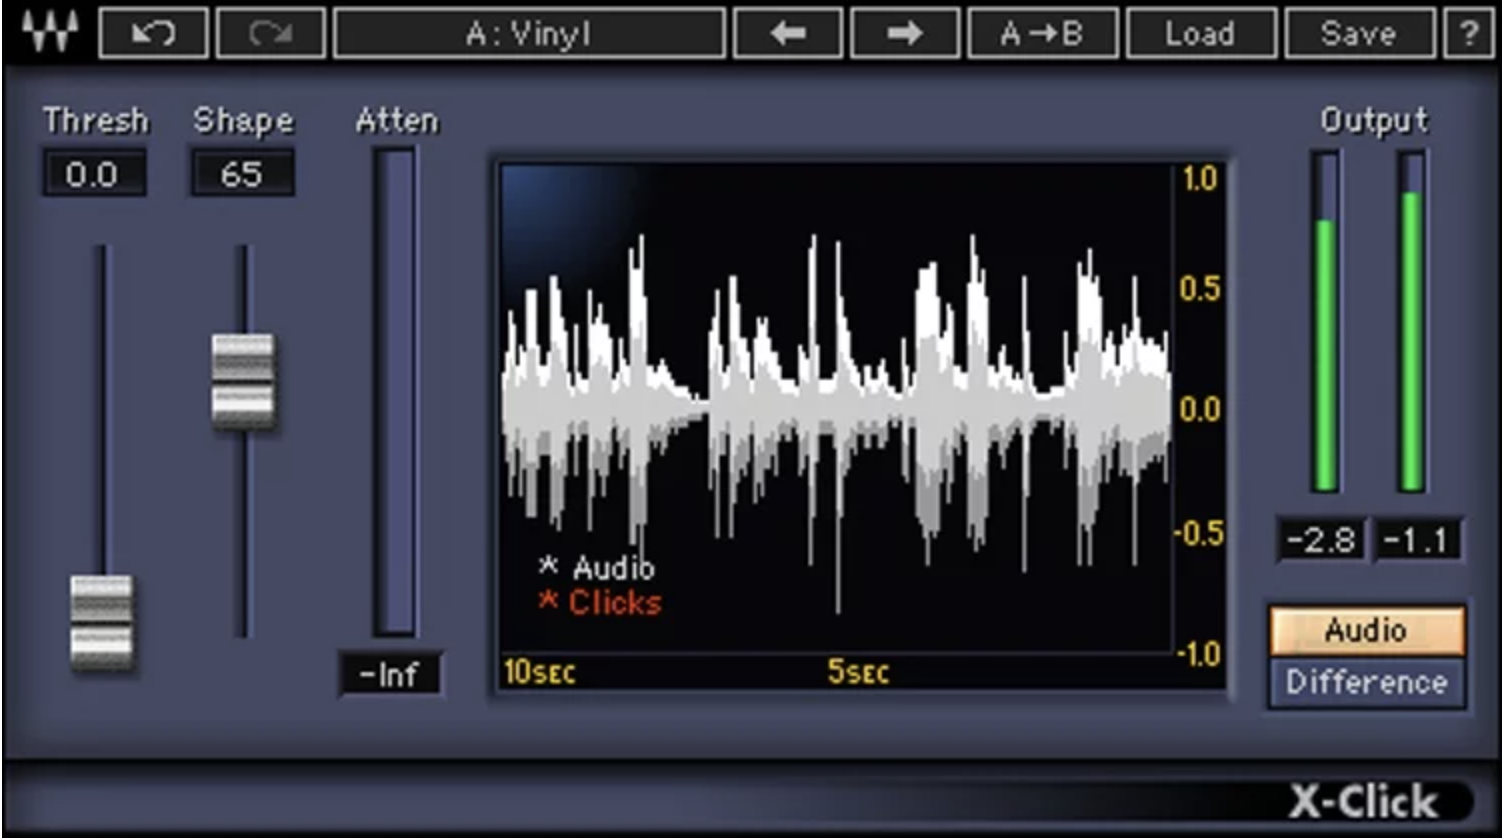 Waves X-Click plugin interface showing the threshold and shape knobs.